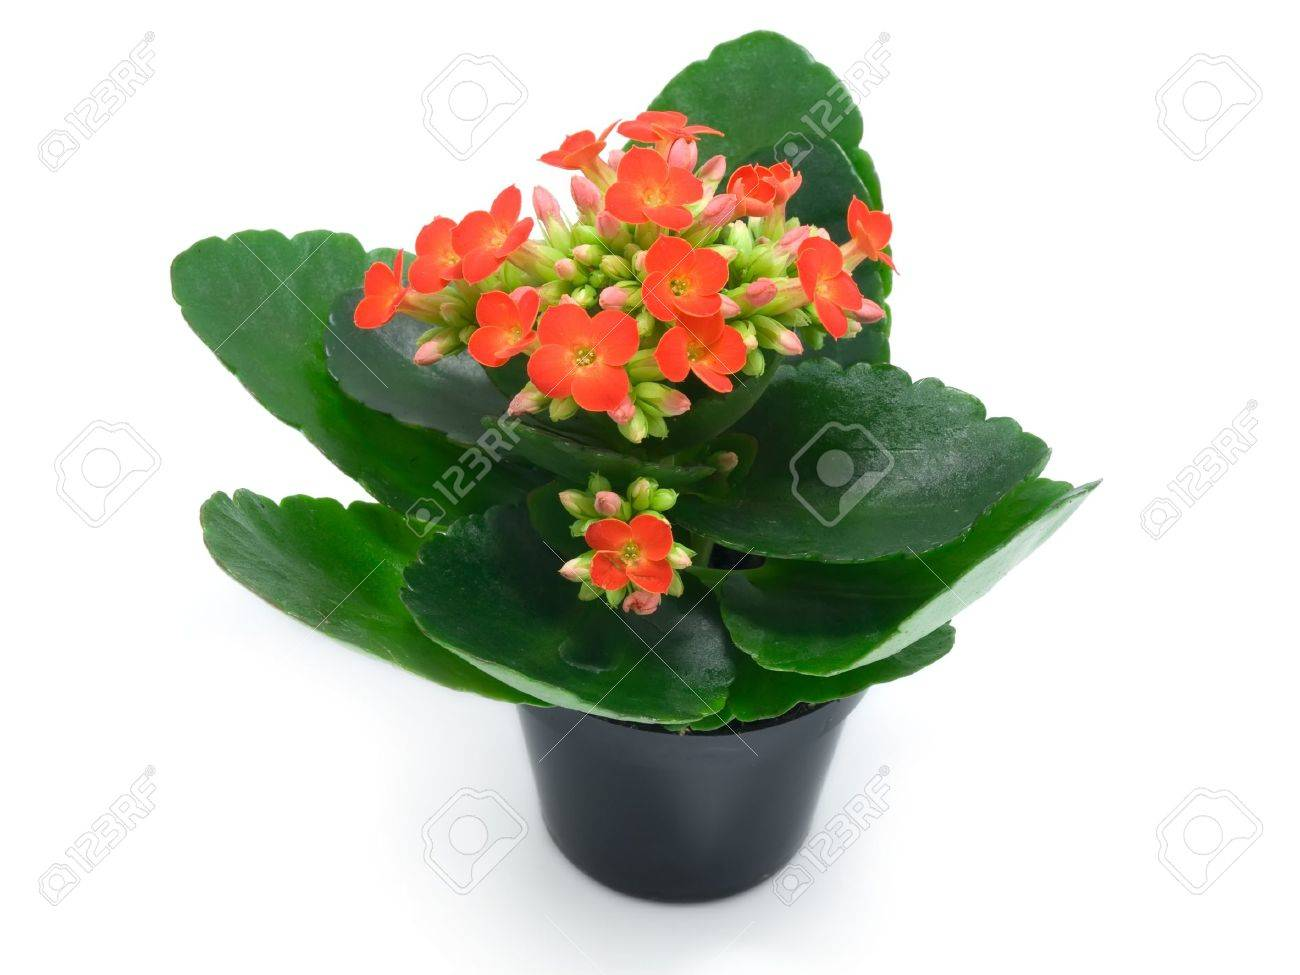 Red Flowering House Plants green houseplants with red flowers stock photo, picture and